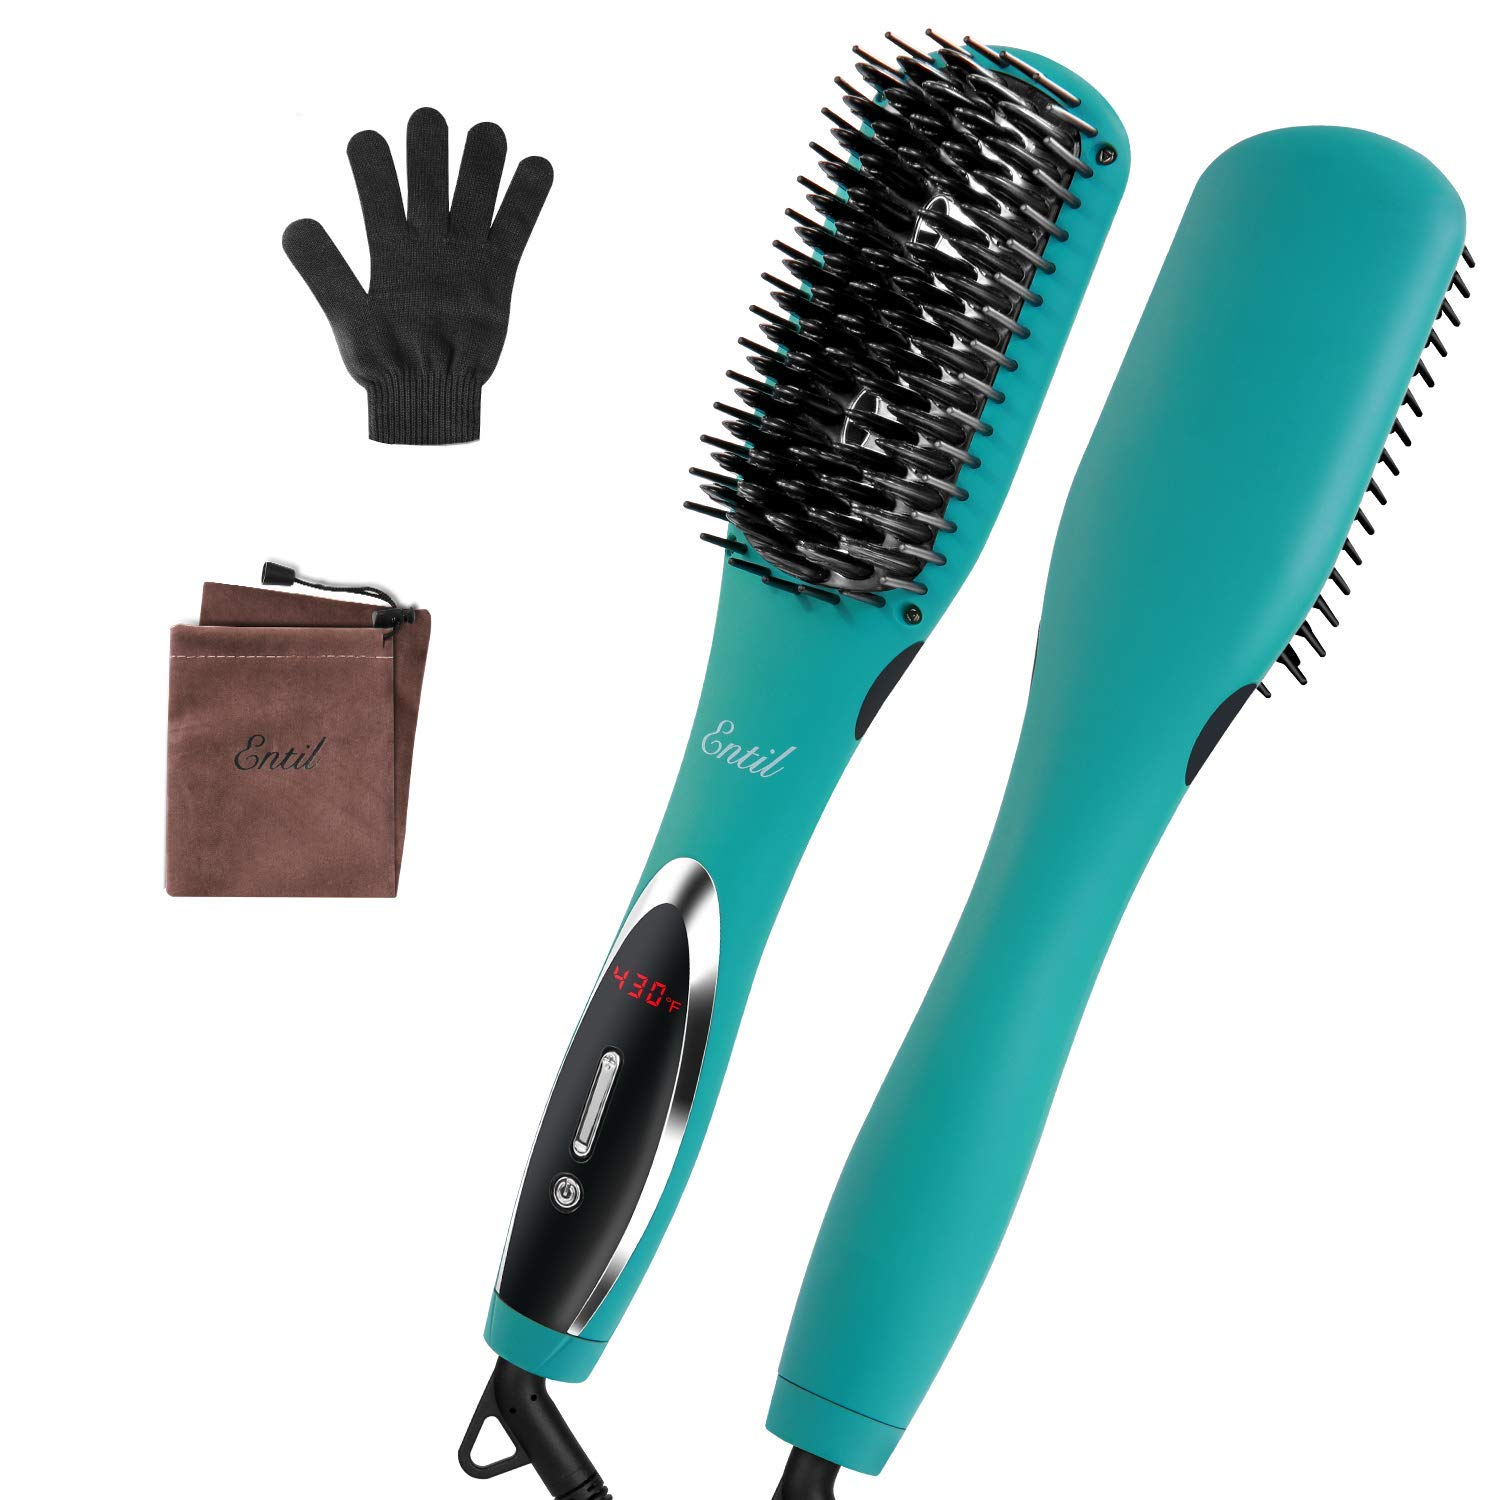 Hair Straightener Brush Heat Straightening Brush - Fast Heating Ceramic Iron Negative Ions Electric Auto Shut Off & Temperature Control Anti-Scald Dual Voltage